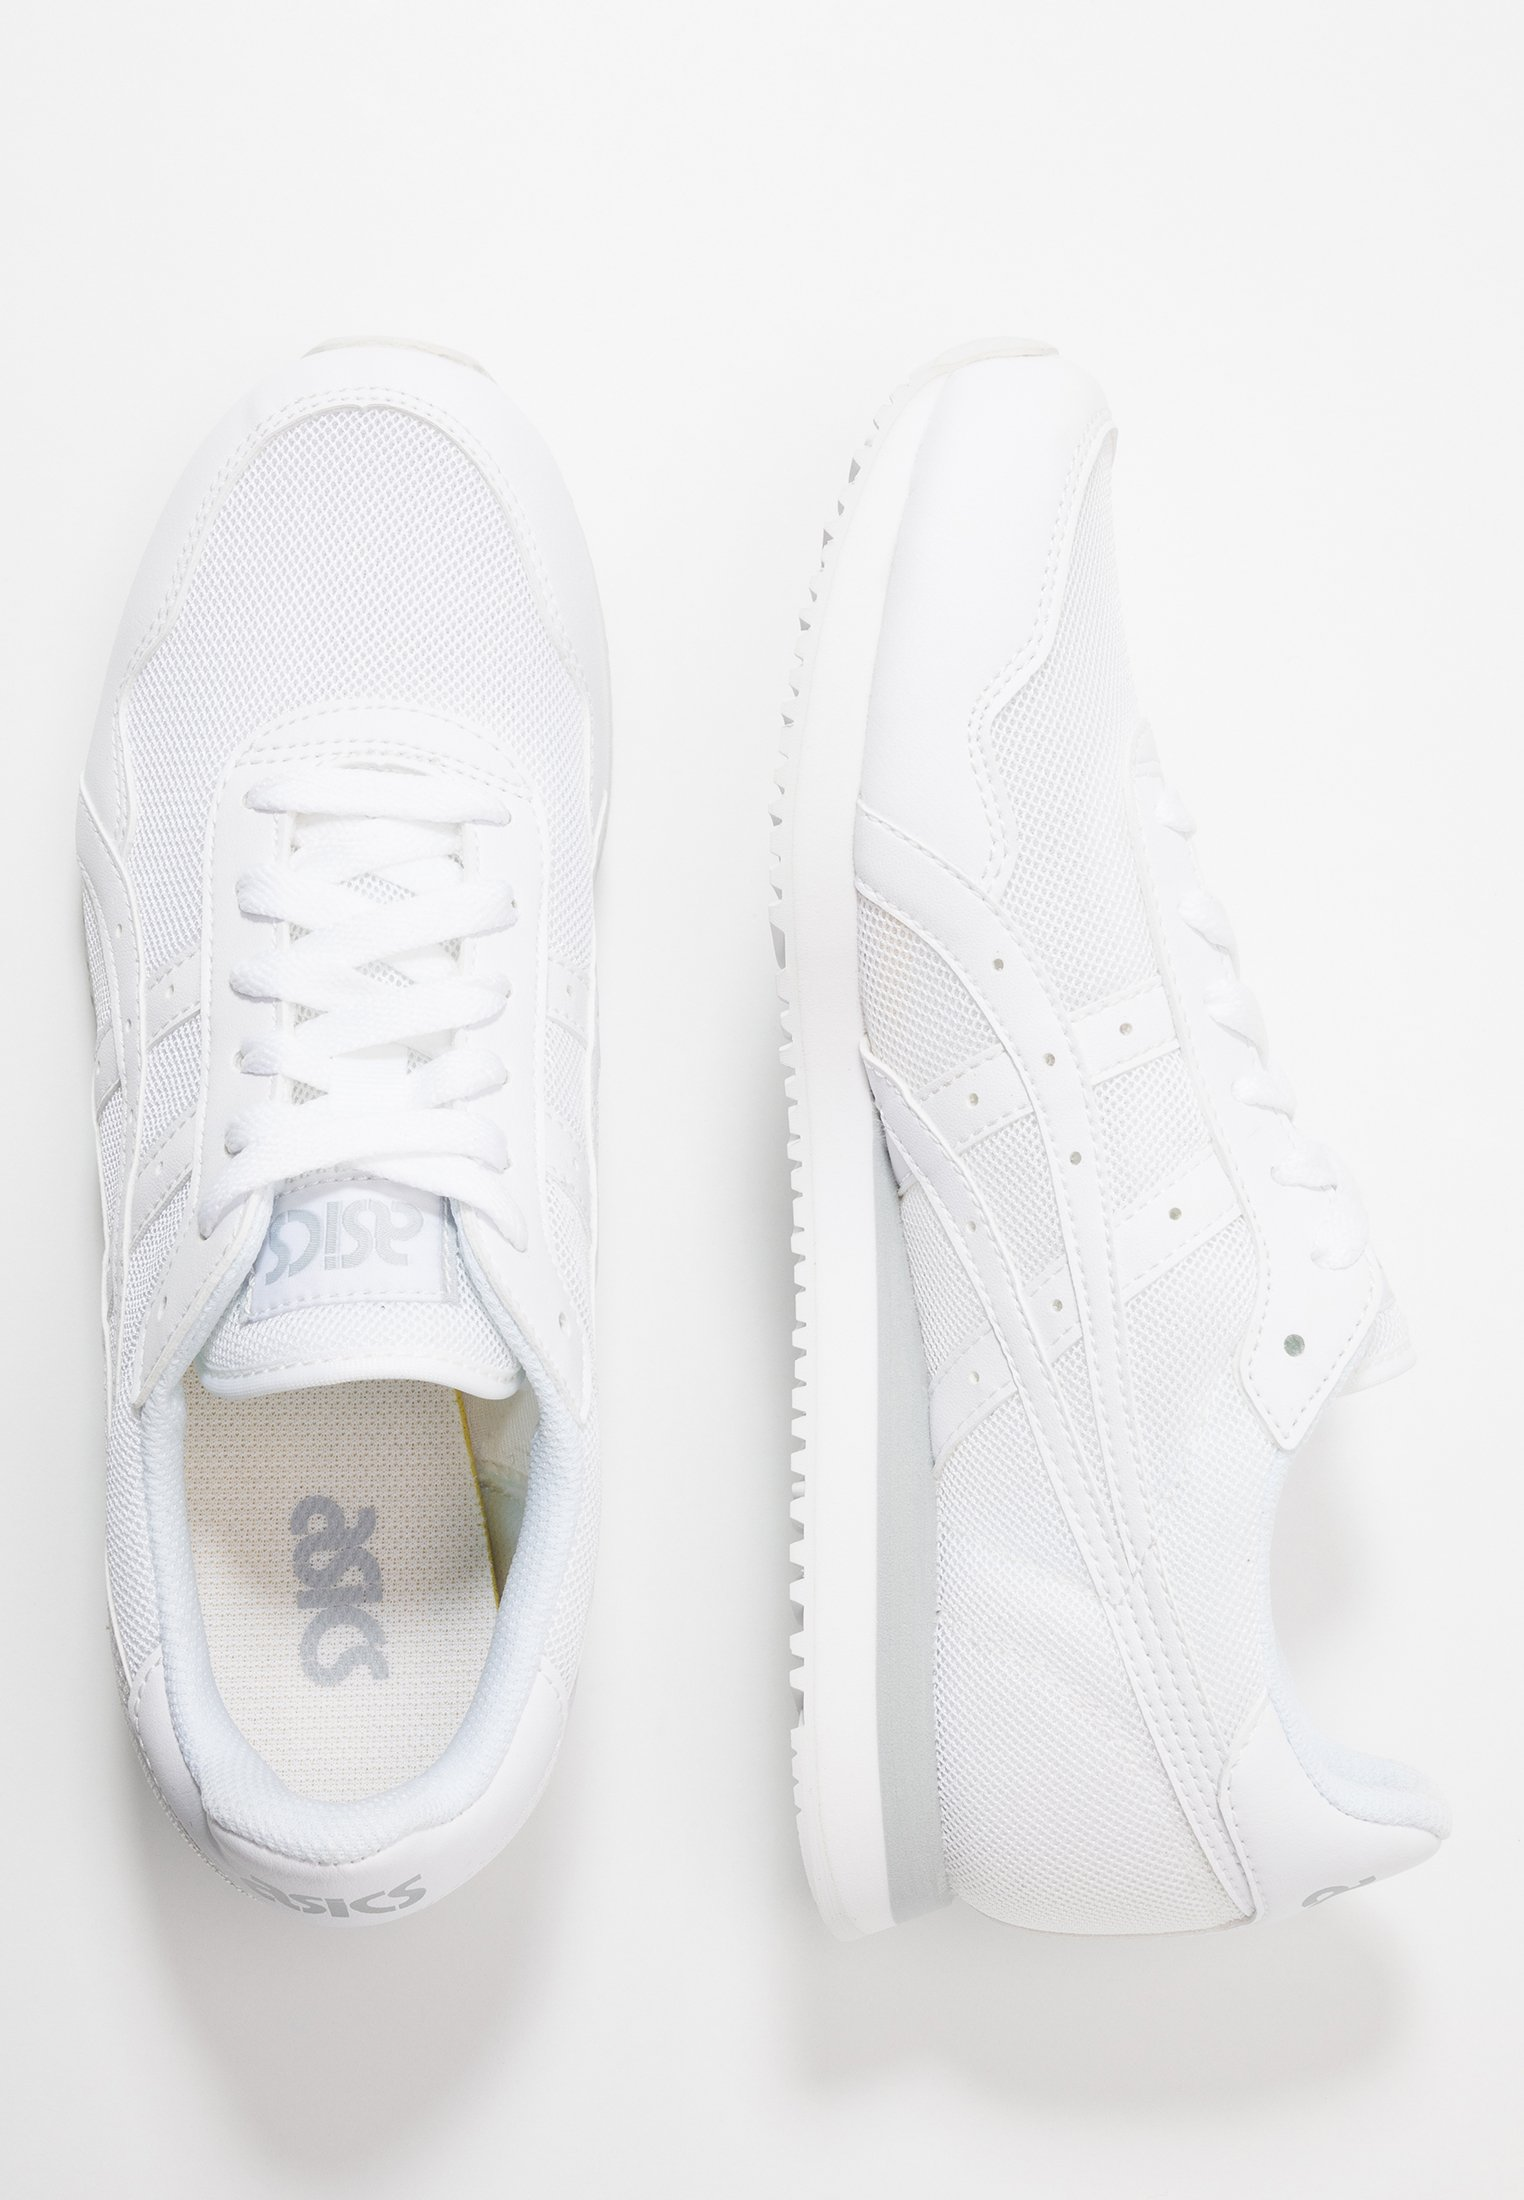 Asics Sportstyle Tiger Runner - Trainers White